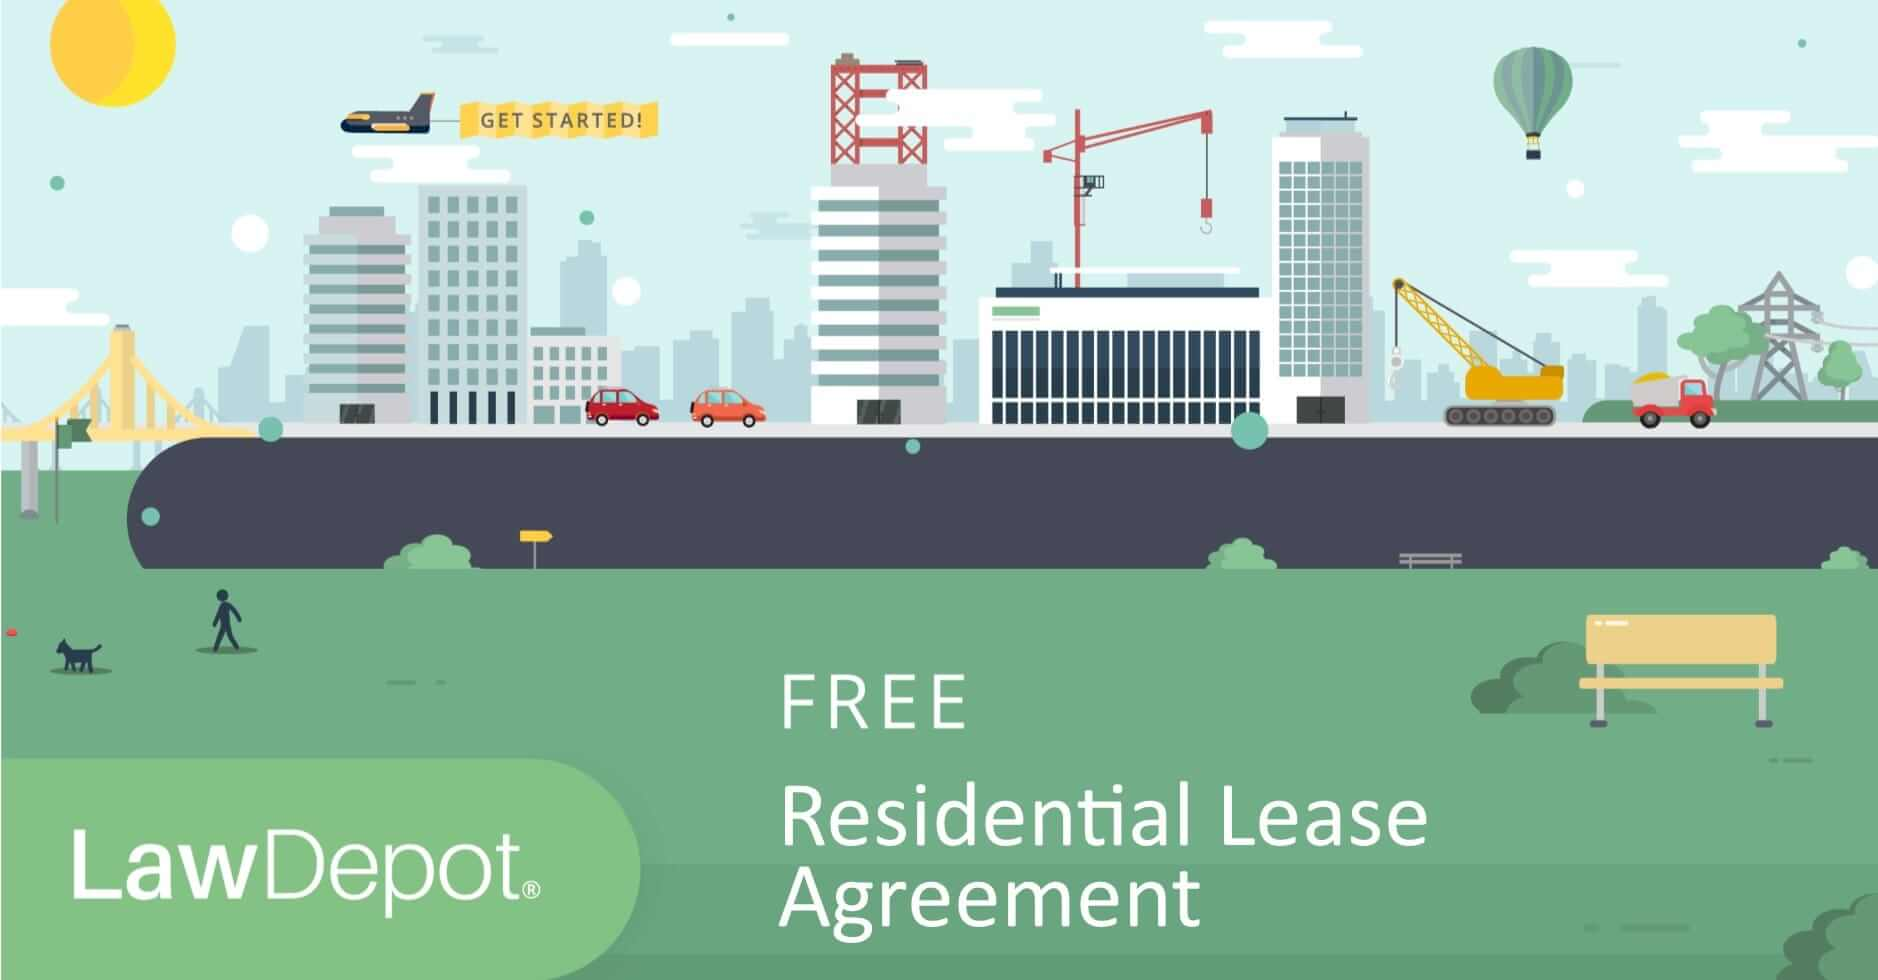 Residential Lease Agreement Free Rental Lease Form US – Free Residential Lease